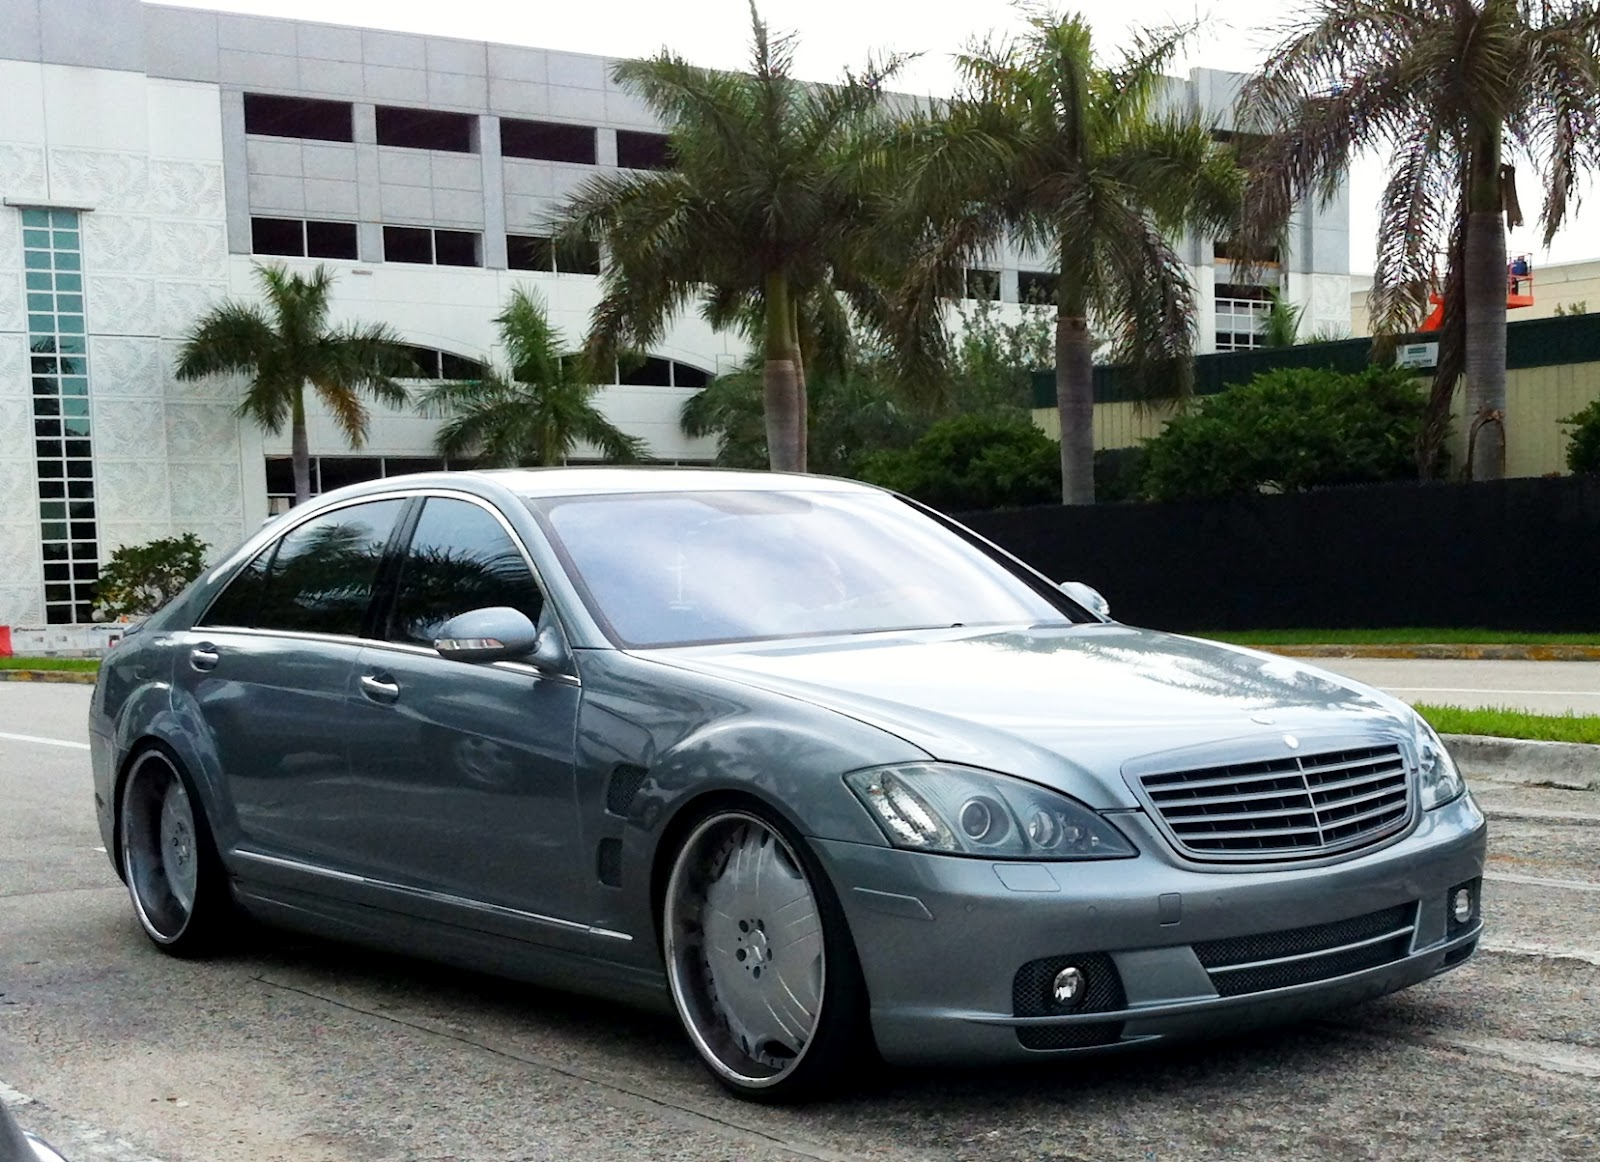 Blue gray customized s class mercedes benz exotic cars for Mercedes benz south miami